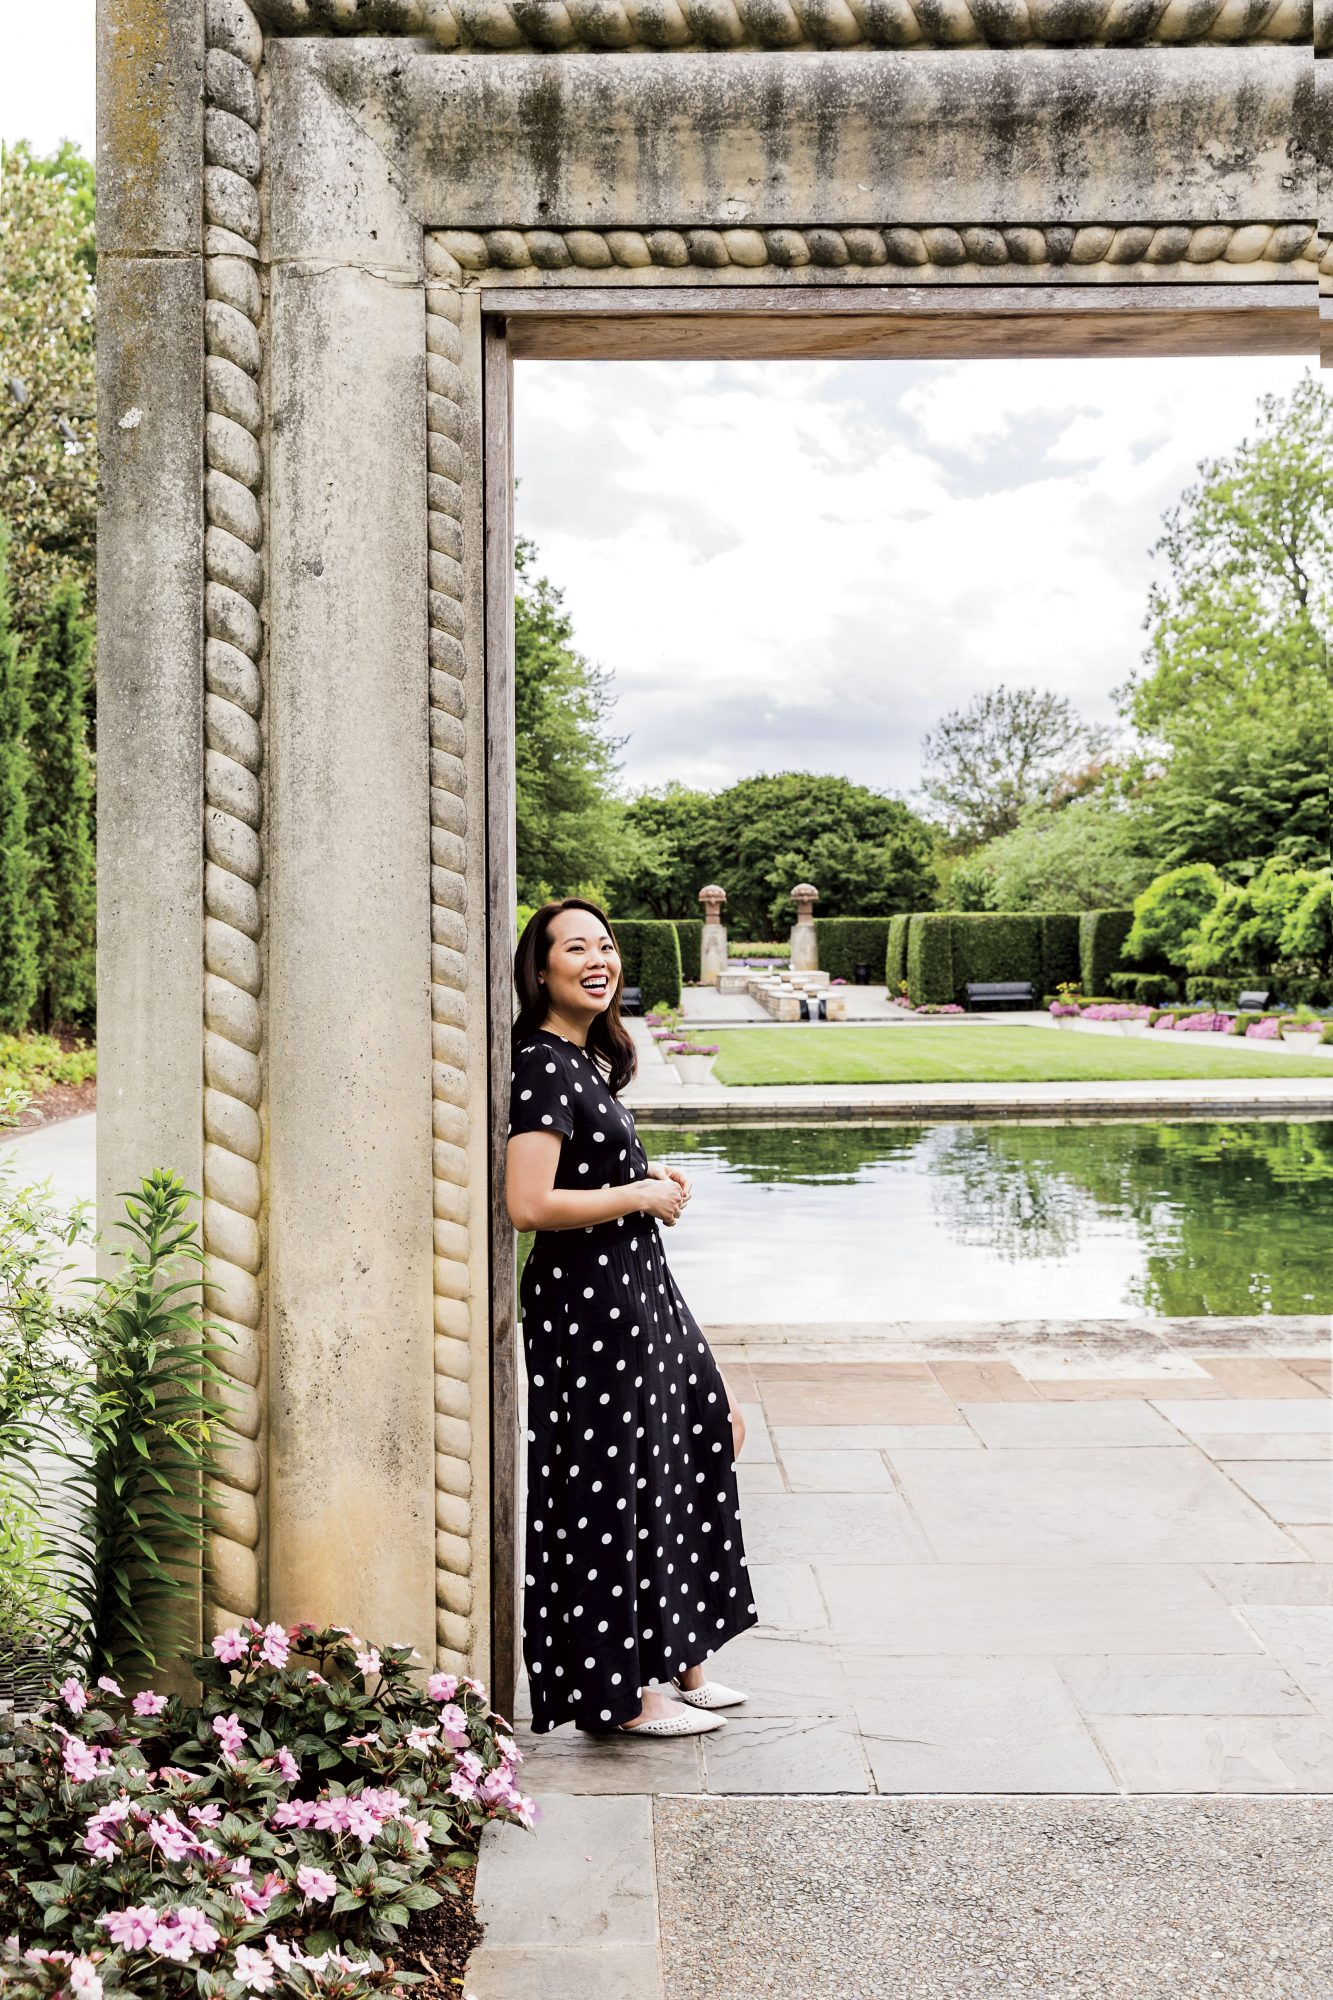 Michelle Tran at Dallas Arboretum